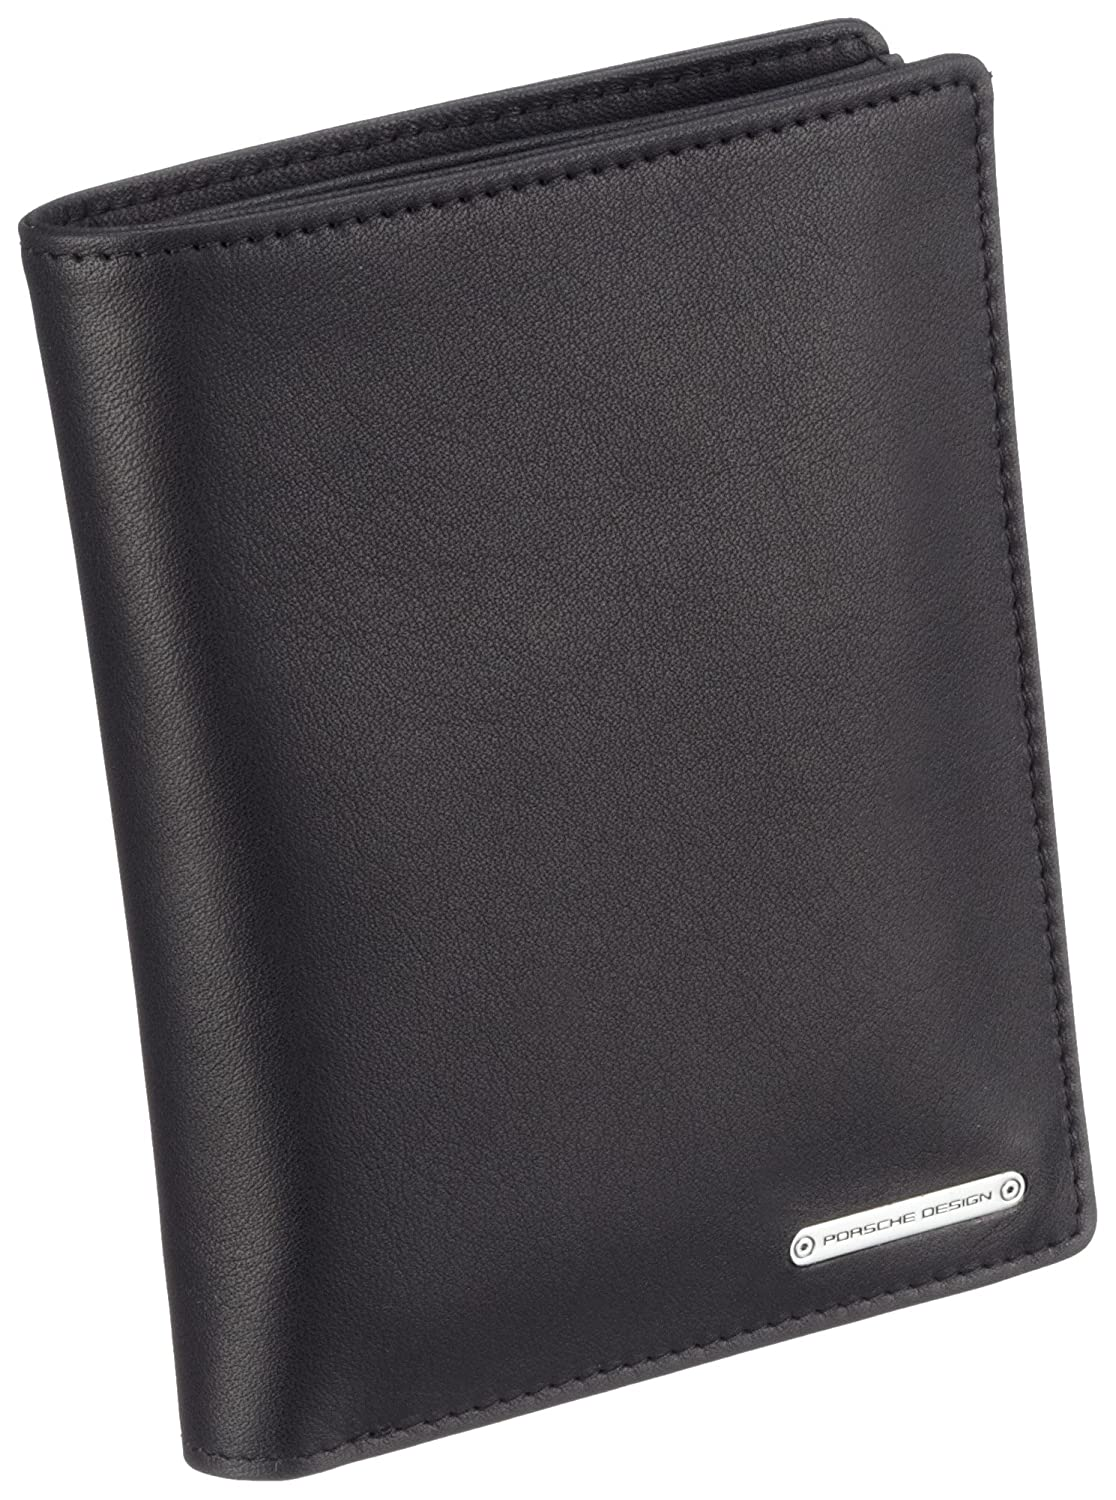 TALLA one size. Porsche Design 09/18/19110-01 - Monedero de cuero unisex, color negro, talla one size